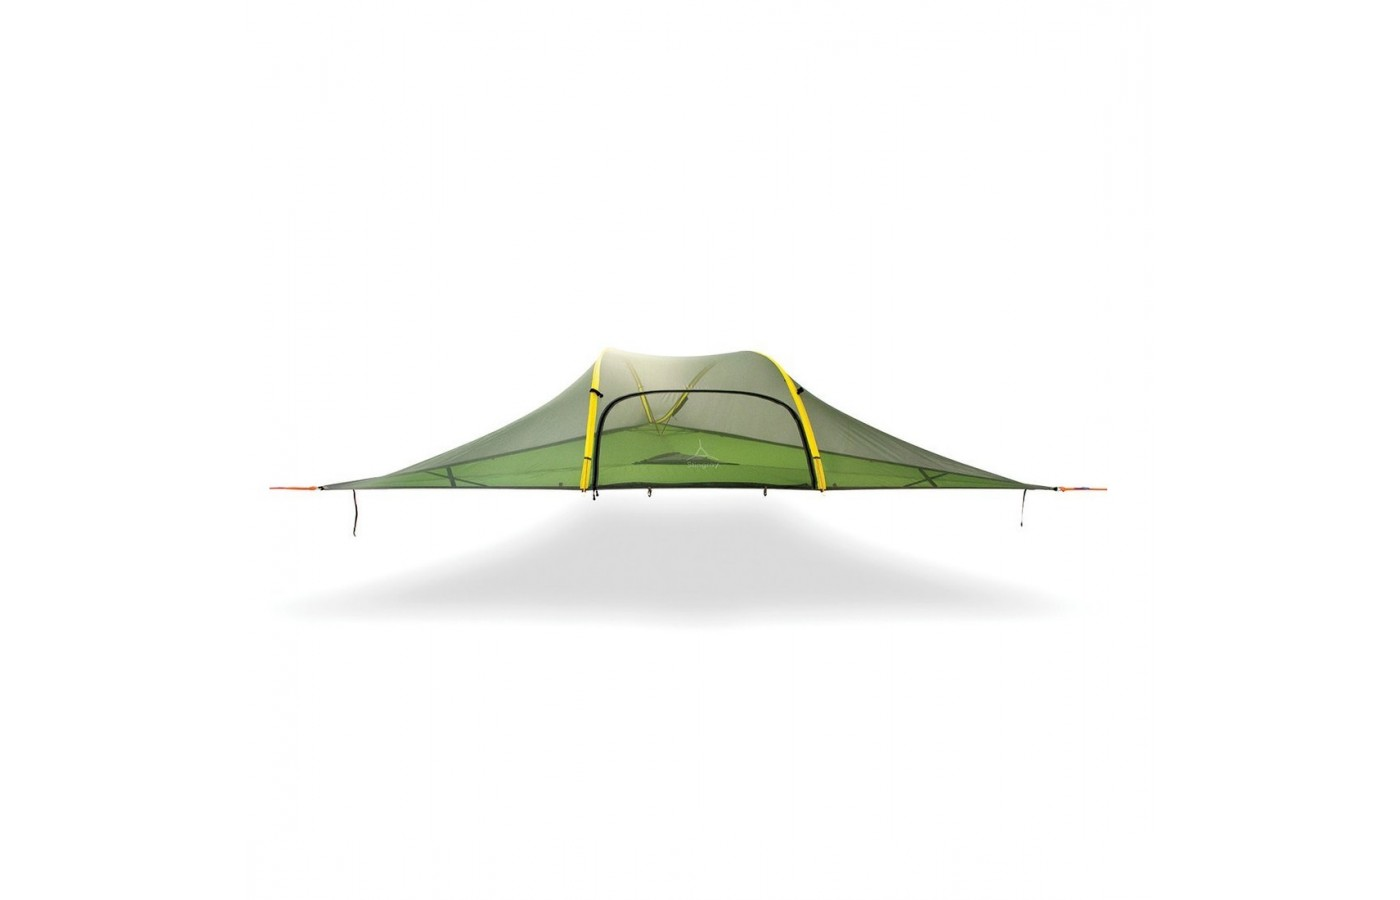 The Tentsile Stingray offers enough space for three campers for a larger capacity.